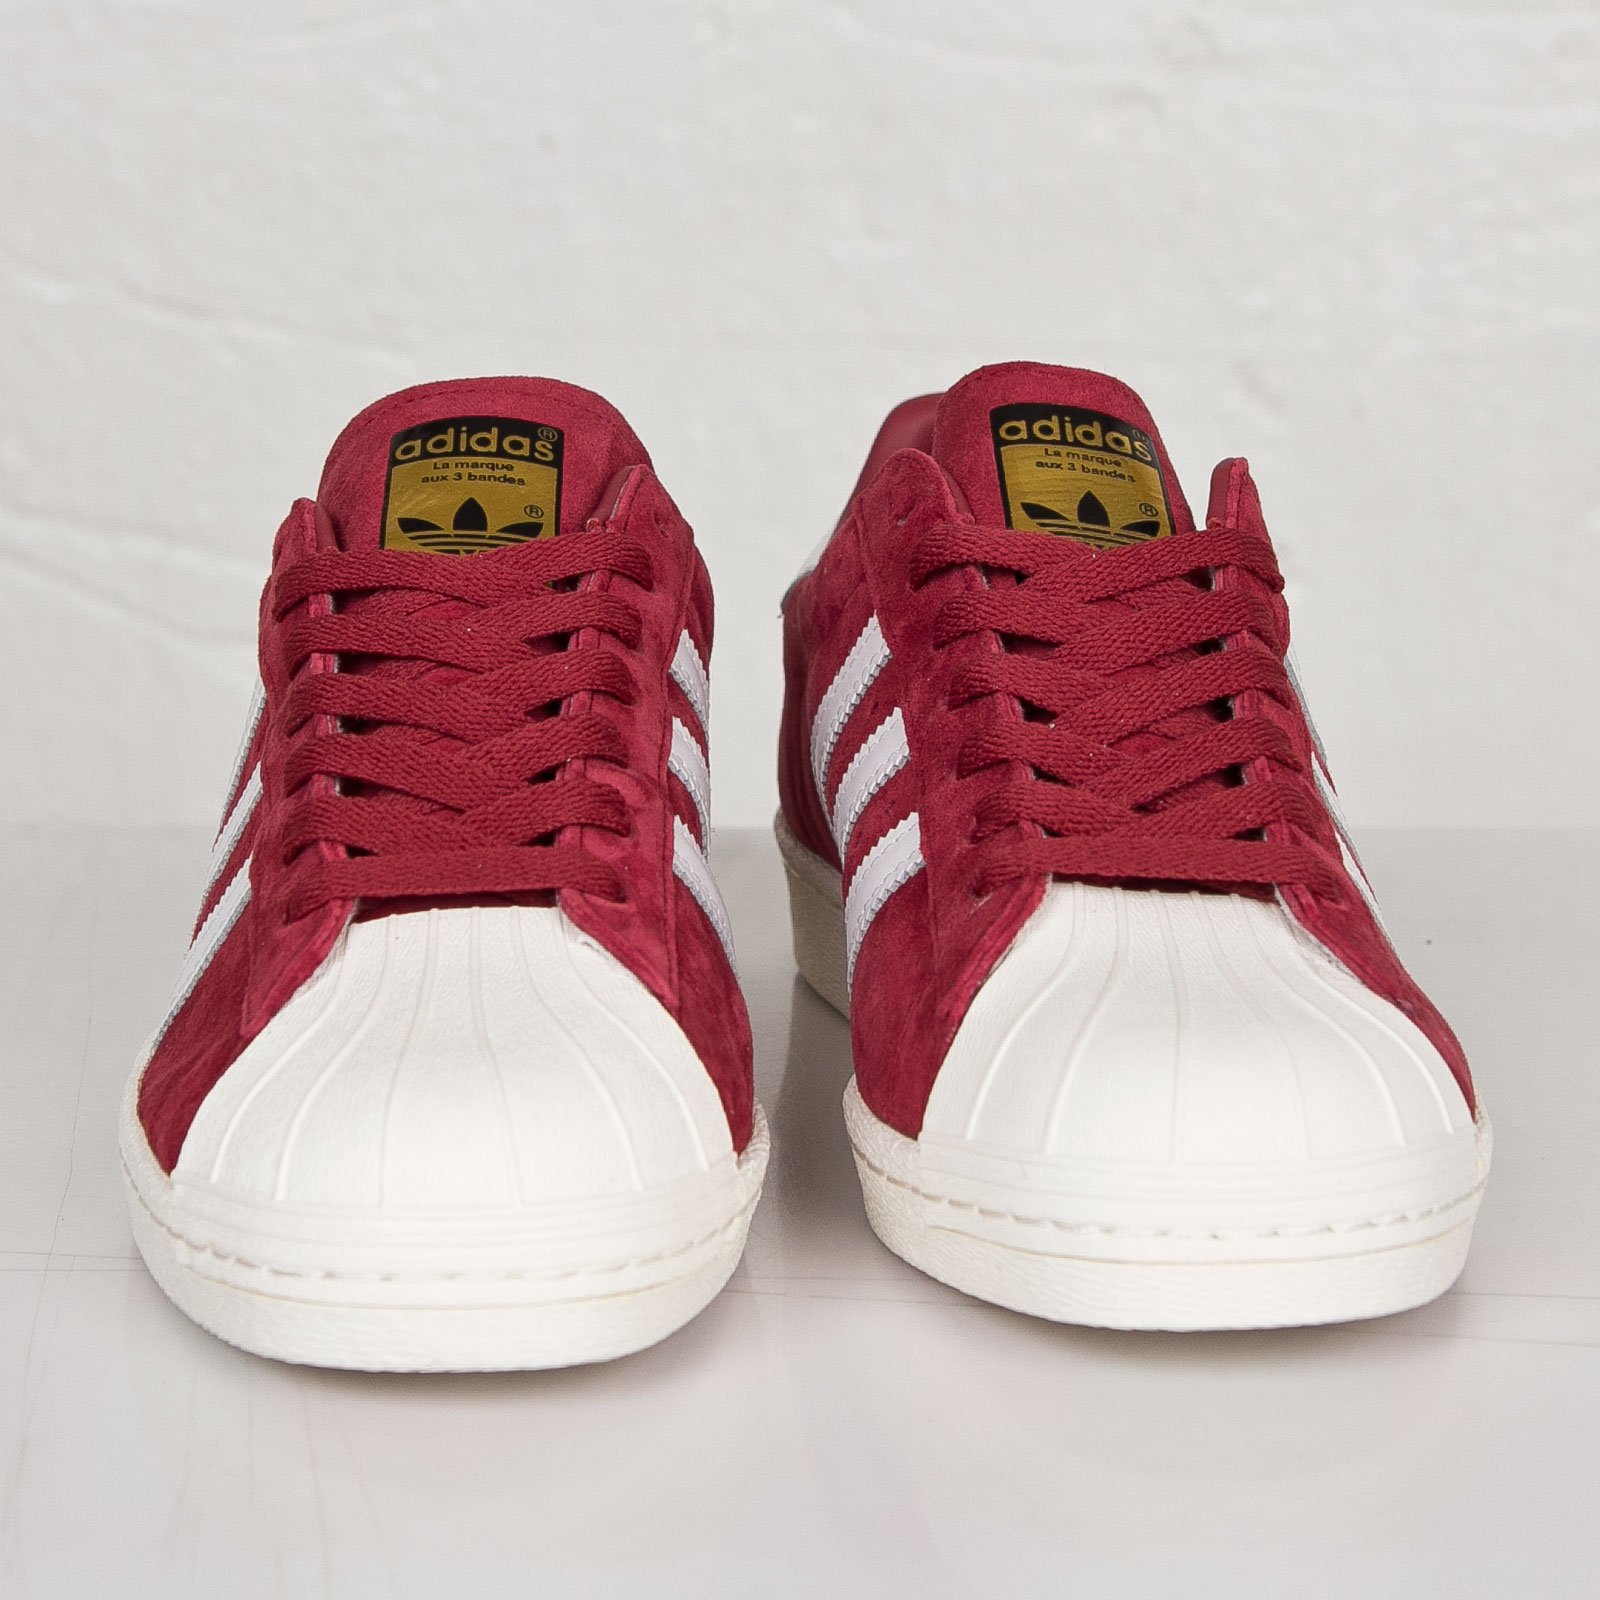 finest selection 1a496 87289 ... adidas Superstar 80s Deluxe Suede ...